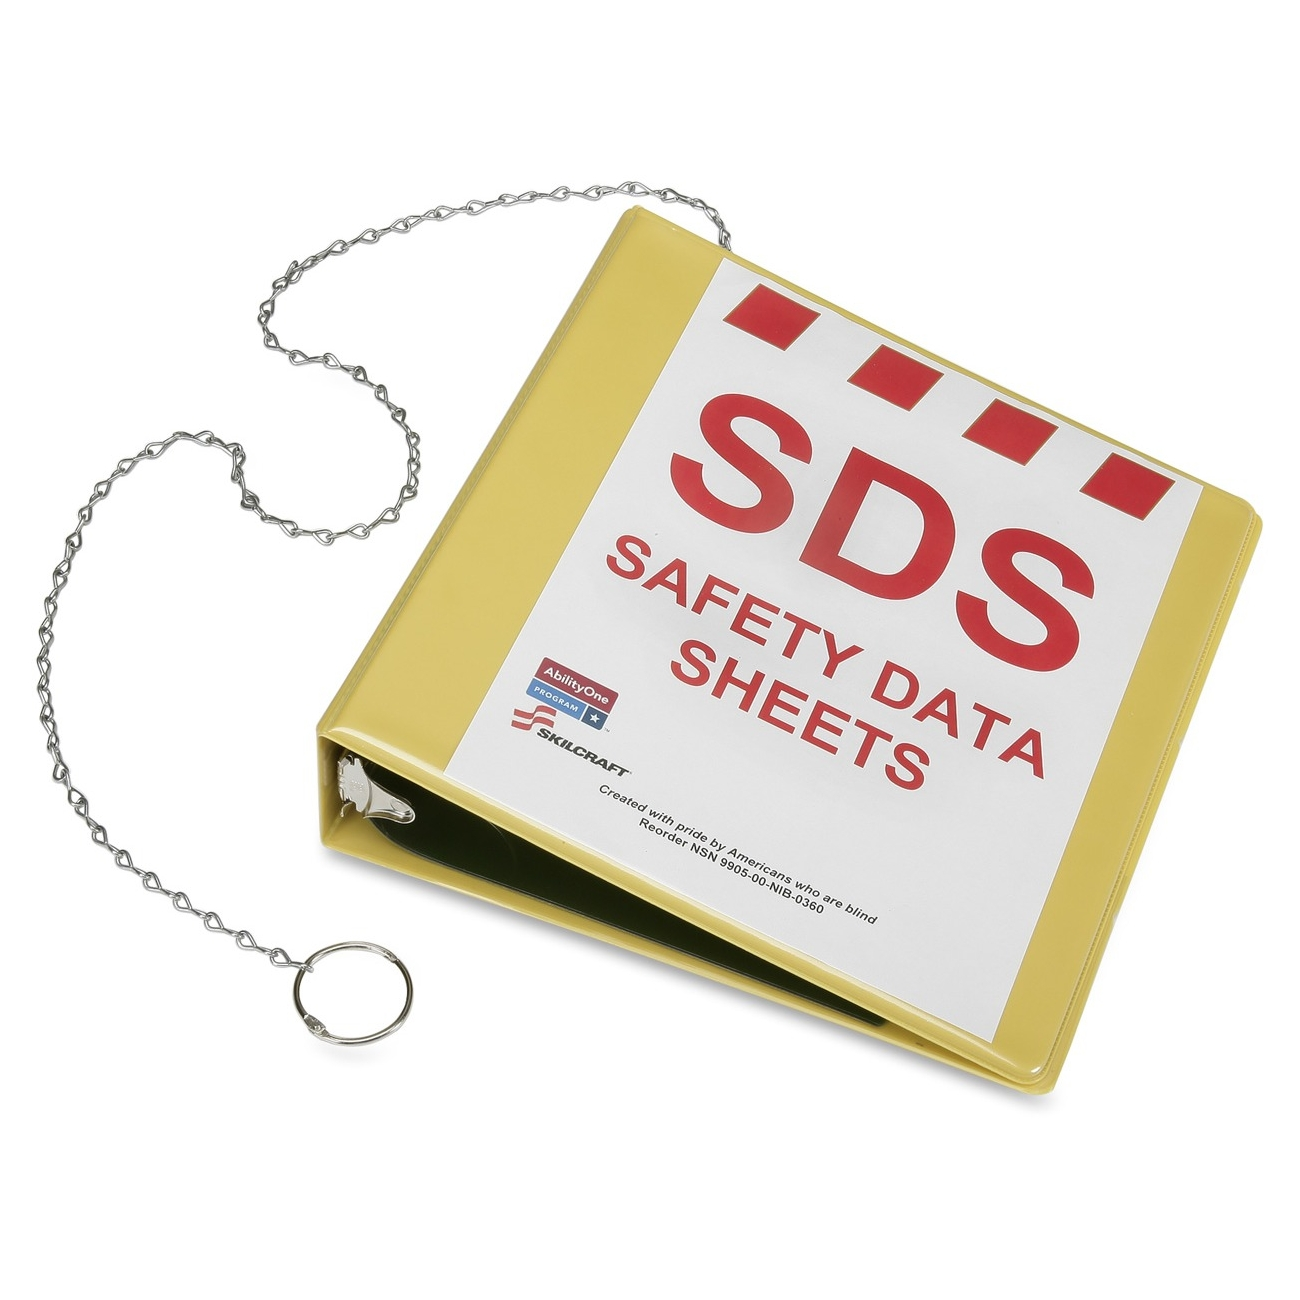 "Skilcraft Safety Data Sheets Sds Yellow Binder - 2"" Binder Capacity - 375 Sheet Capacity - Plastic - Yellow - 1 Each (nsn-6236240)"